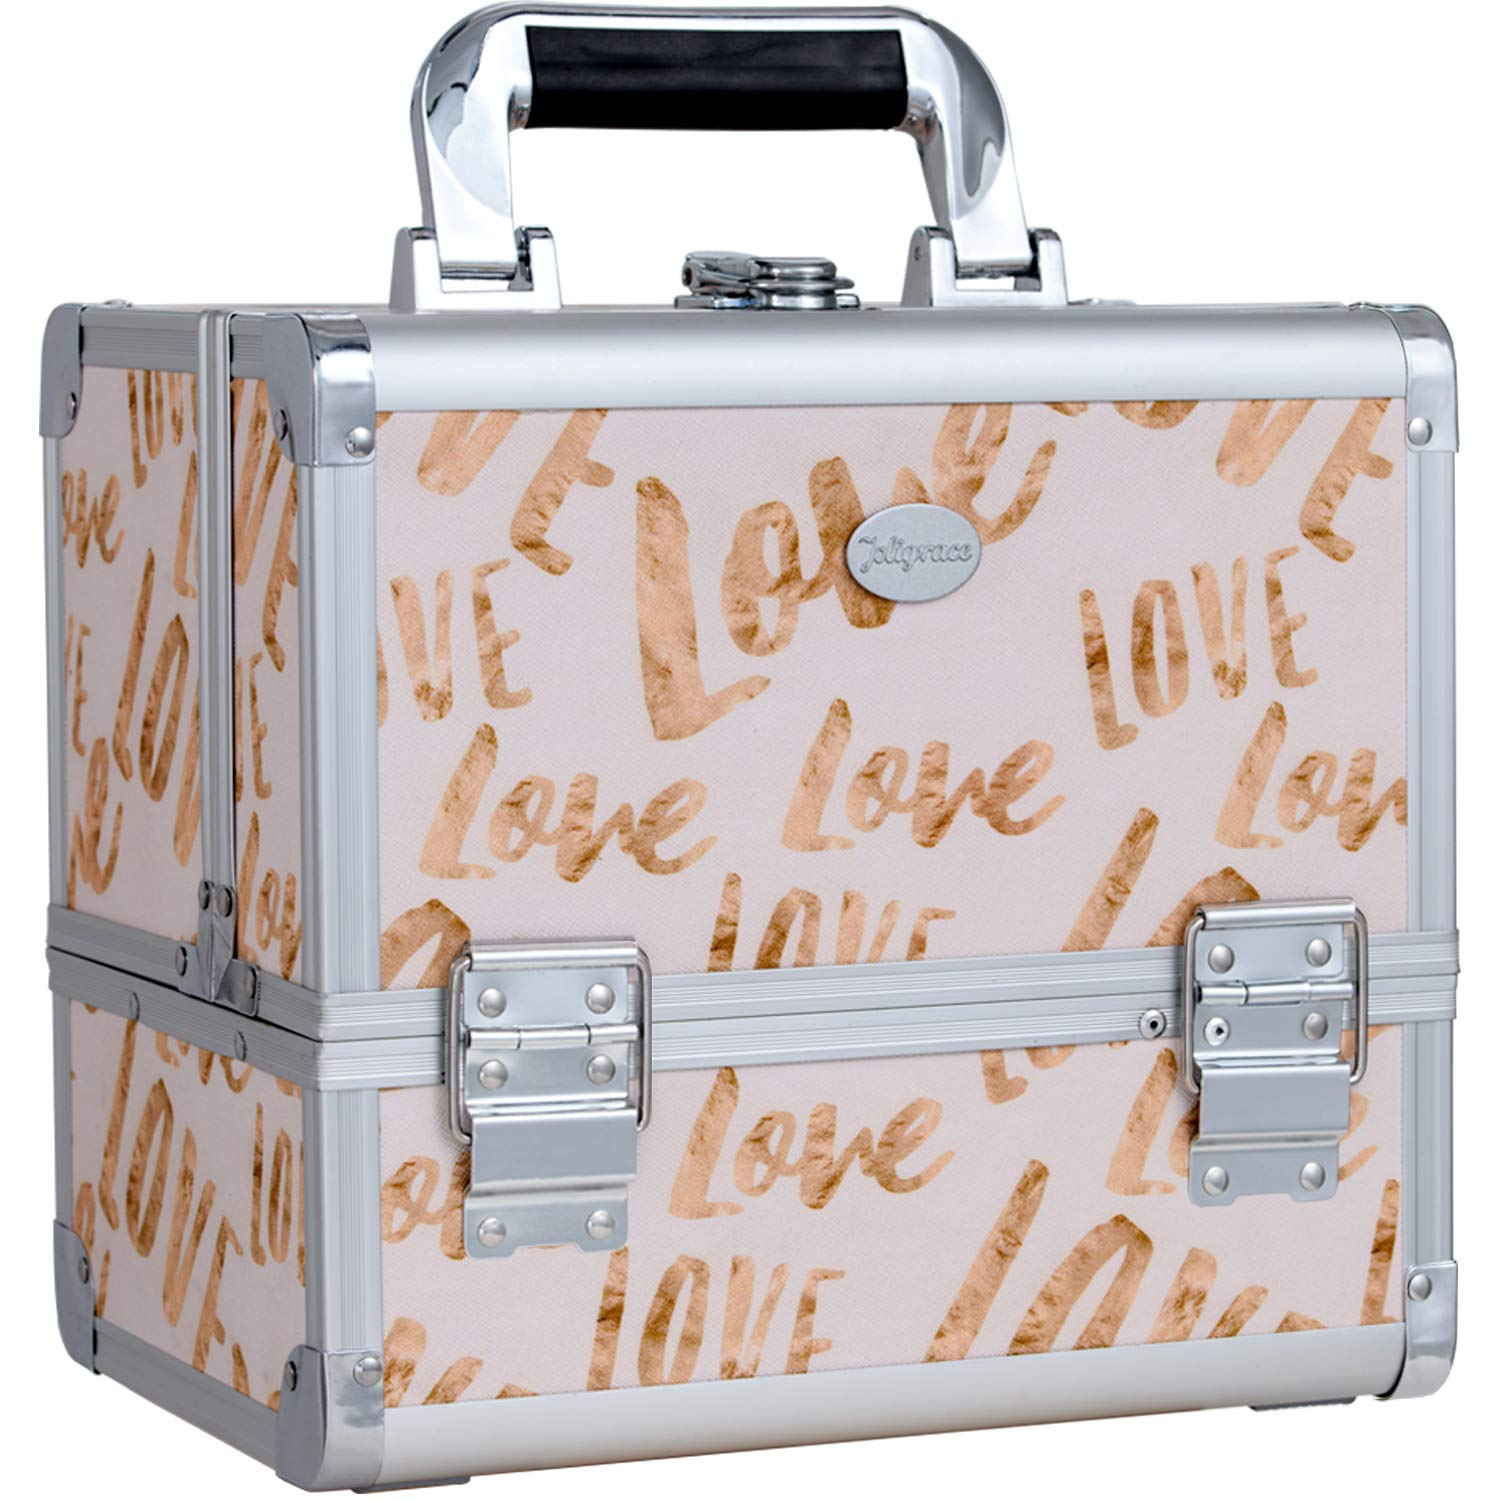 Joligrace Makeup Train Case Cosmetic Organizer Box Lockable with 3 Trays and a Brush Holder White Love Pattern with Mirror by Joligrace